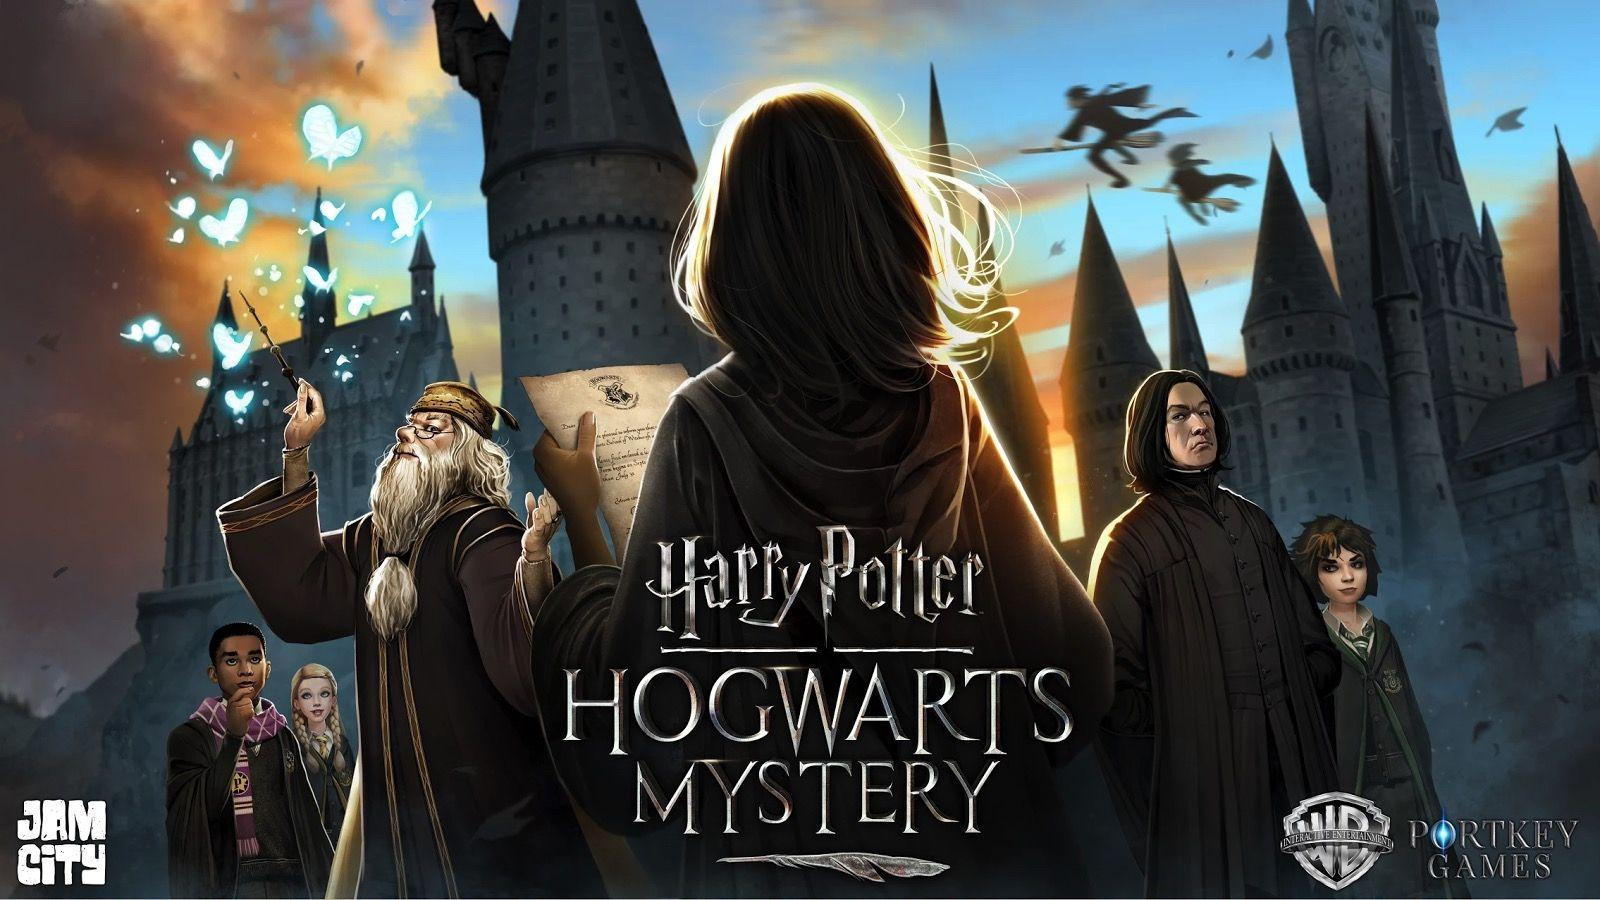 Image result for hpgwarts mystery wallpaper